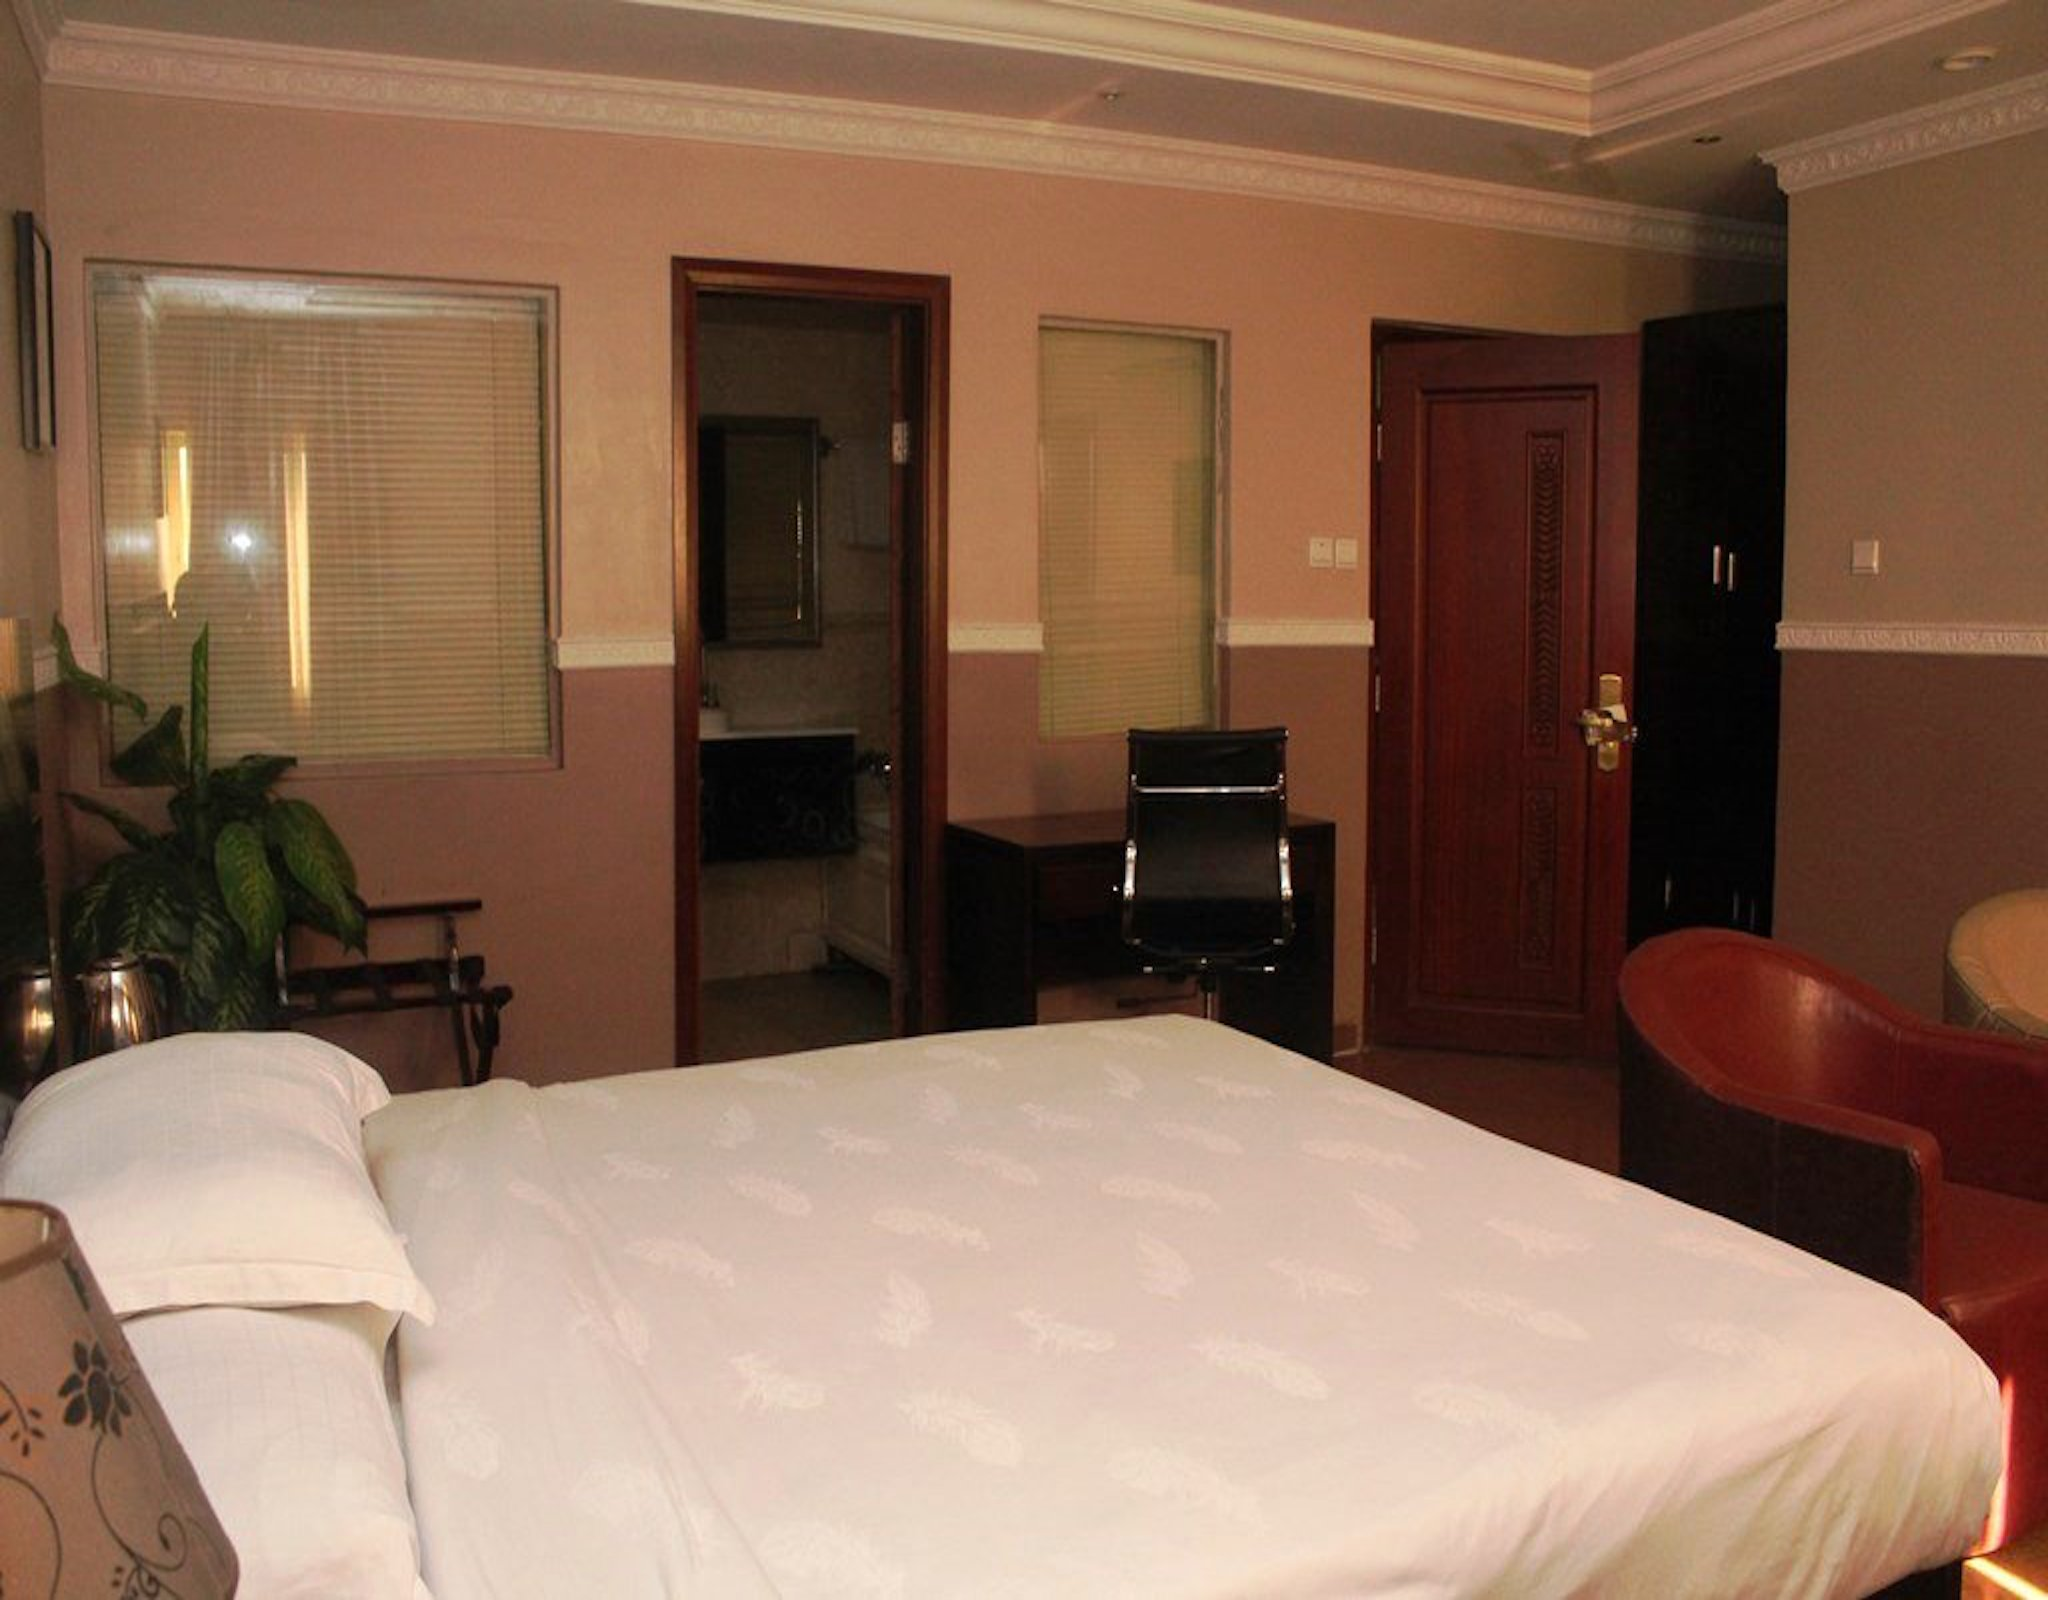 Carat 24 Business Hotel & Suites LTD, Amuwo Odofin